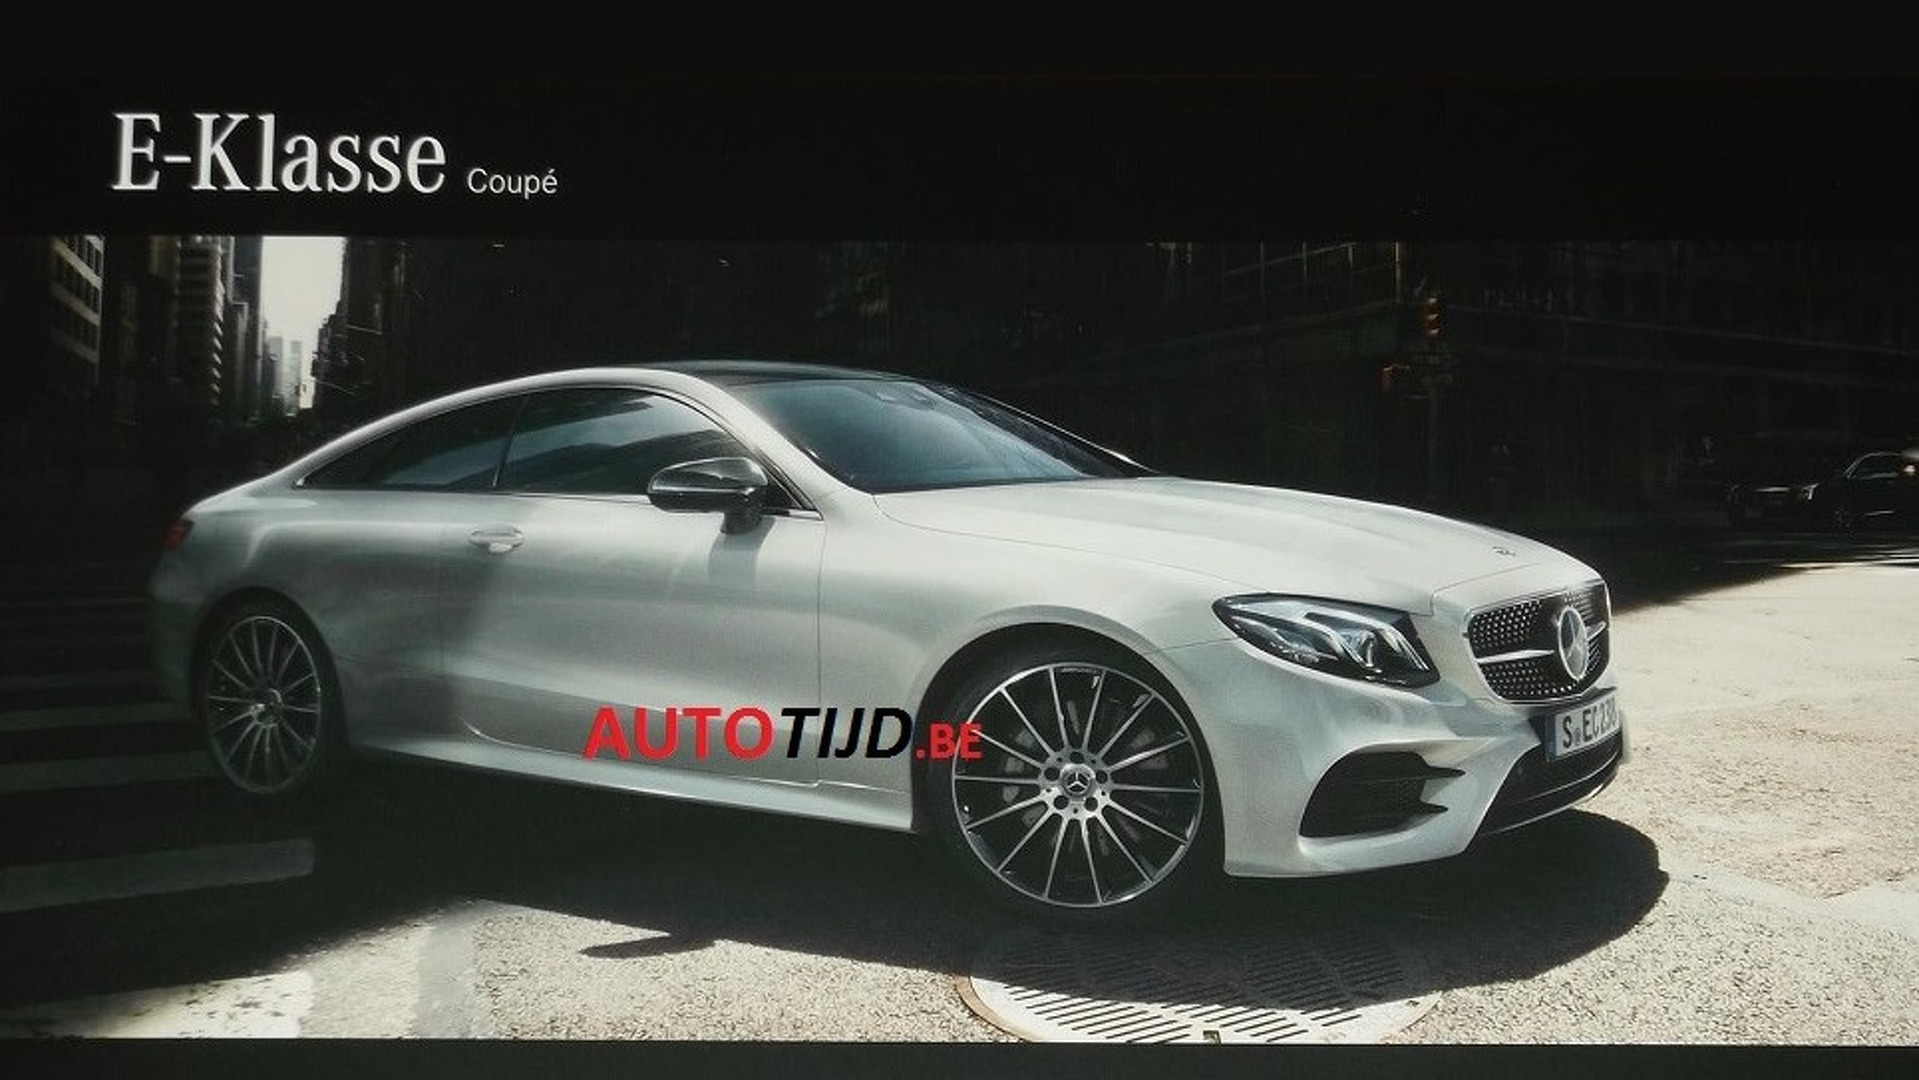 2018 Mercedes E Class Coupe Leaked Brochure Shows It All